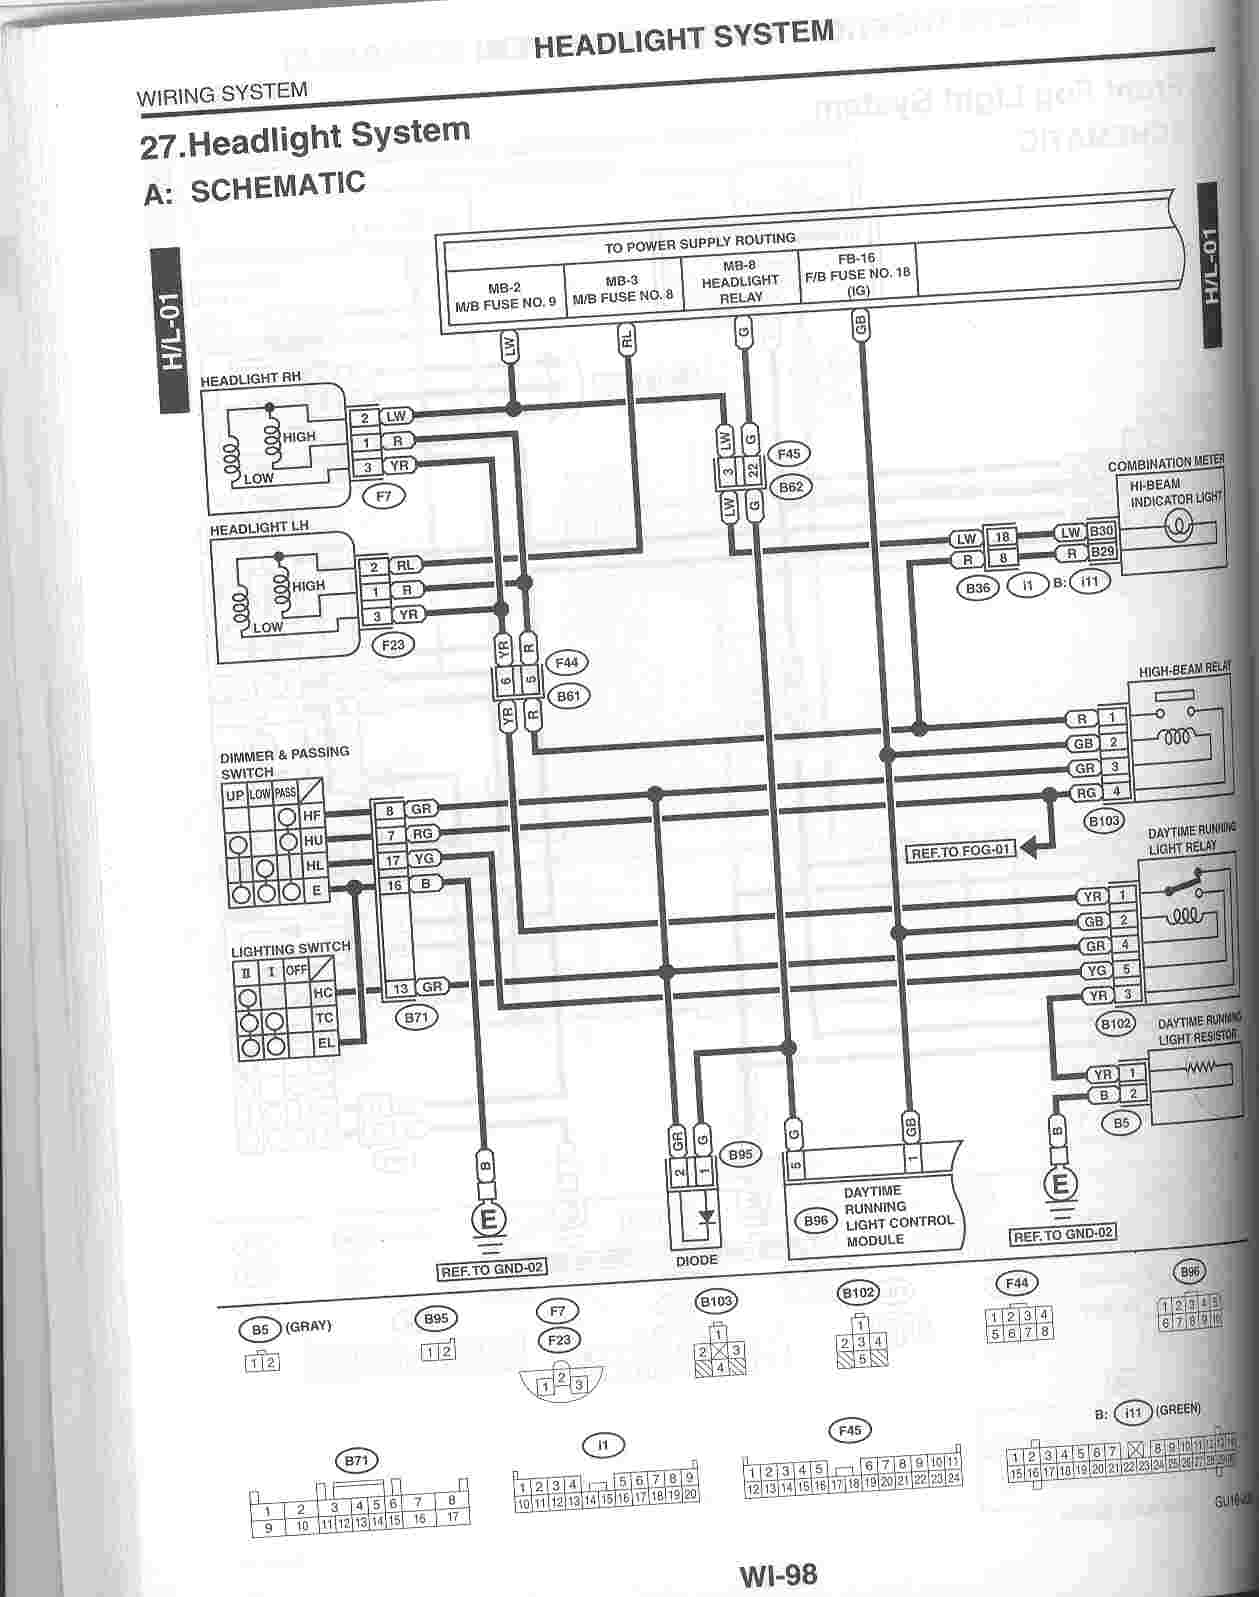 wire diagram 2006 subaru outback - wiring diagrams data  ussel